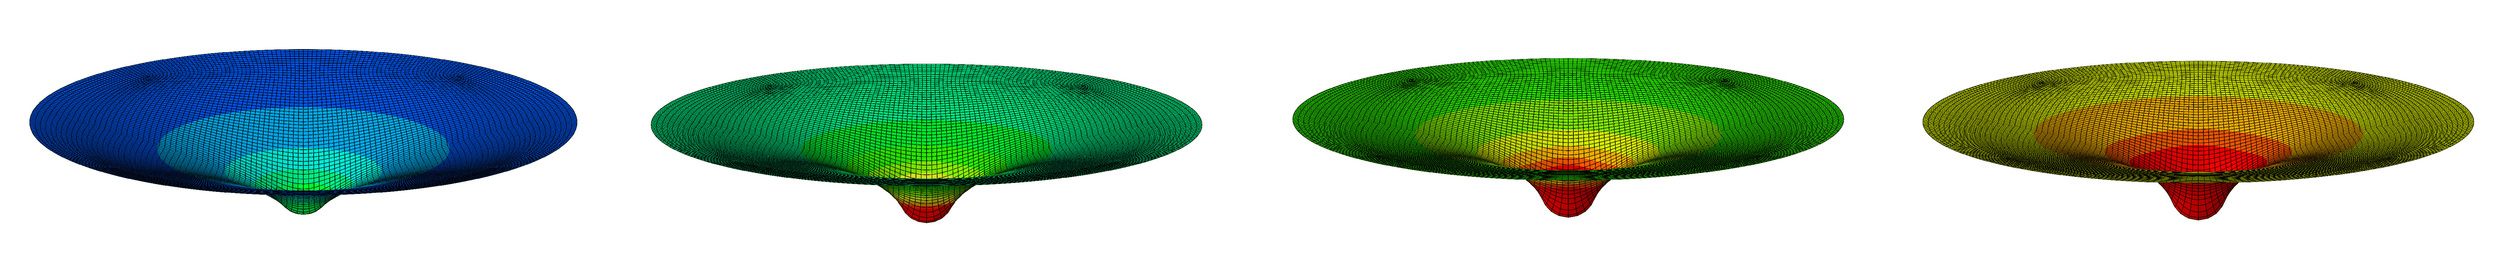 Study of the nonlinear effects of prestrain in a nano-indendation experiment on collagenous biomembranes (left to right: 0,10,20,30% prestrain).